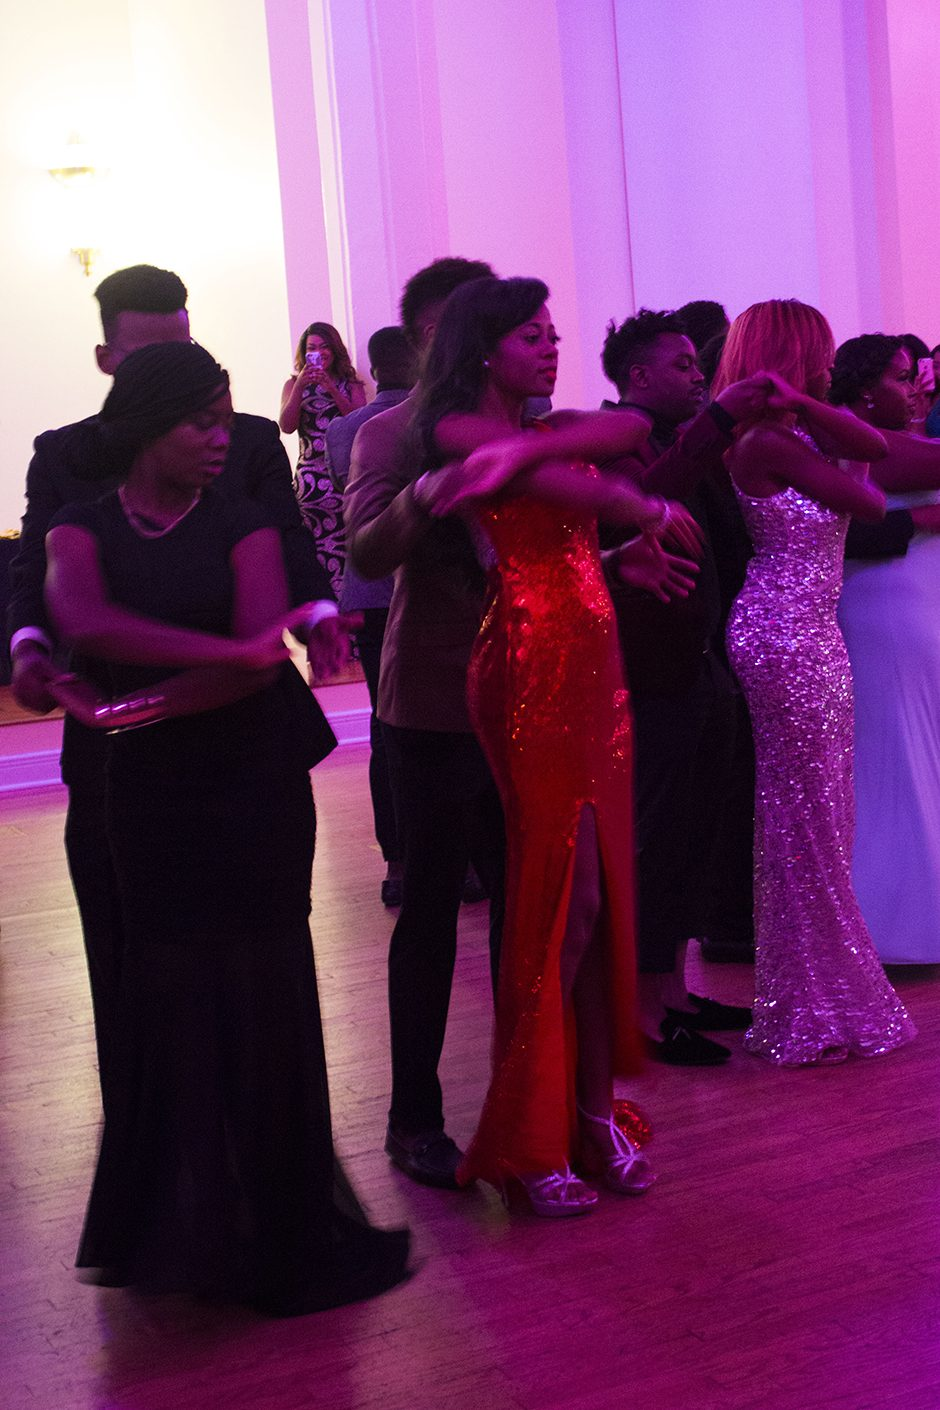 Attendees at the LBC Homecoming Black Tourmaline Ball have some fun on the dance floor. Photo by Ymani Wince